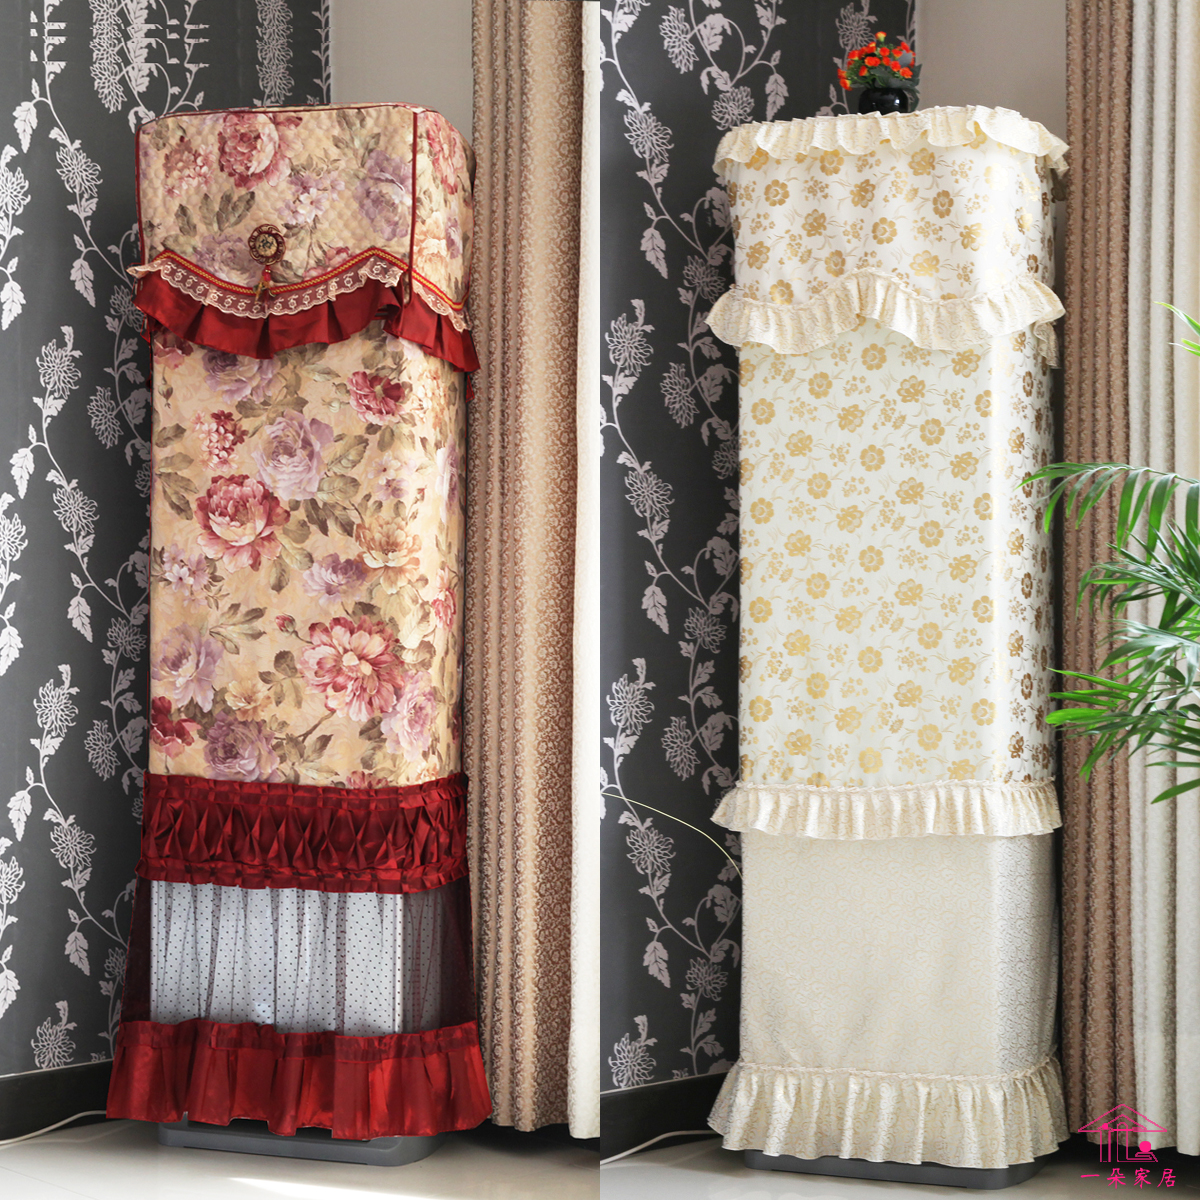 Fashion classic fabric vertical air conditioner cover packaged air conditioner sheathers dust cover air conditioning units(China (Mainland))